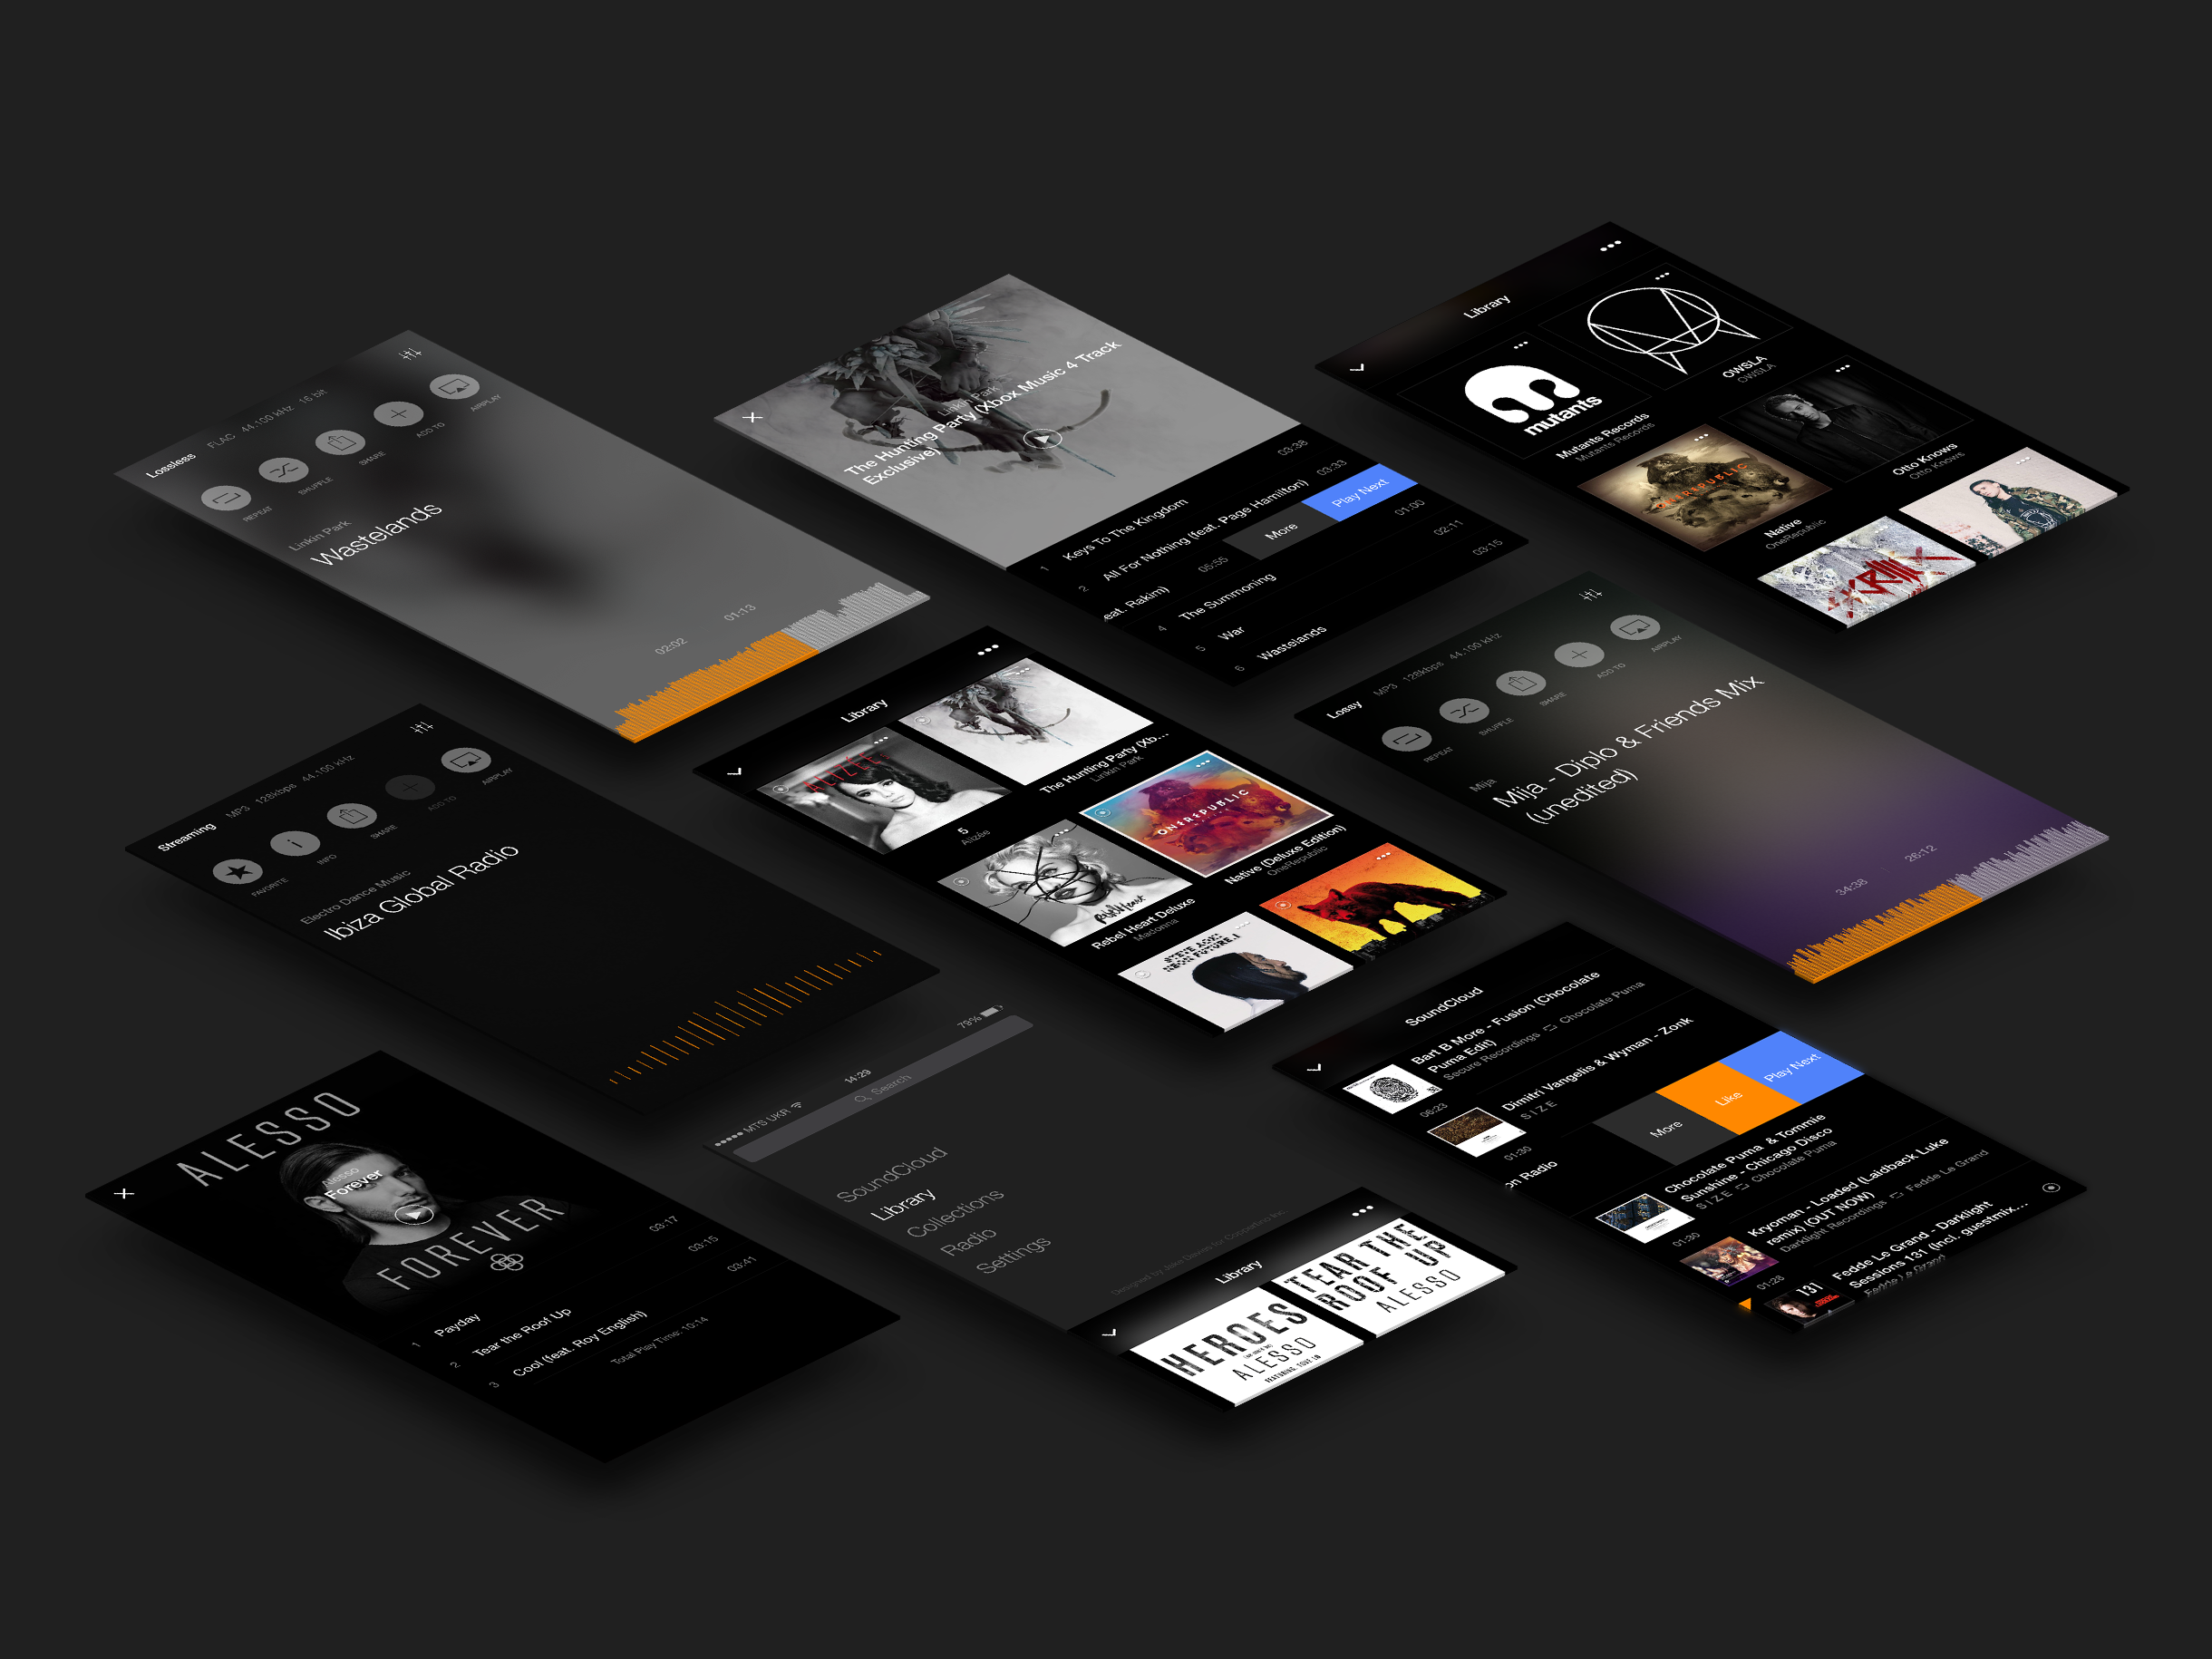 VOX for iOS - The #1 music player for Mac, now on your iPhone